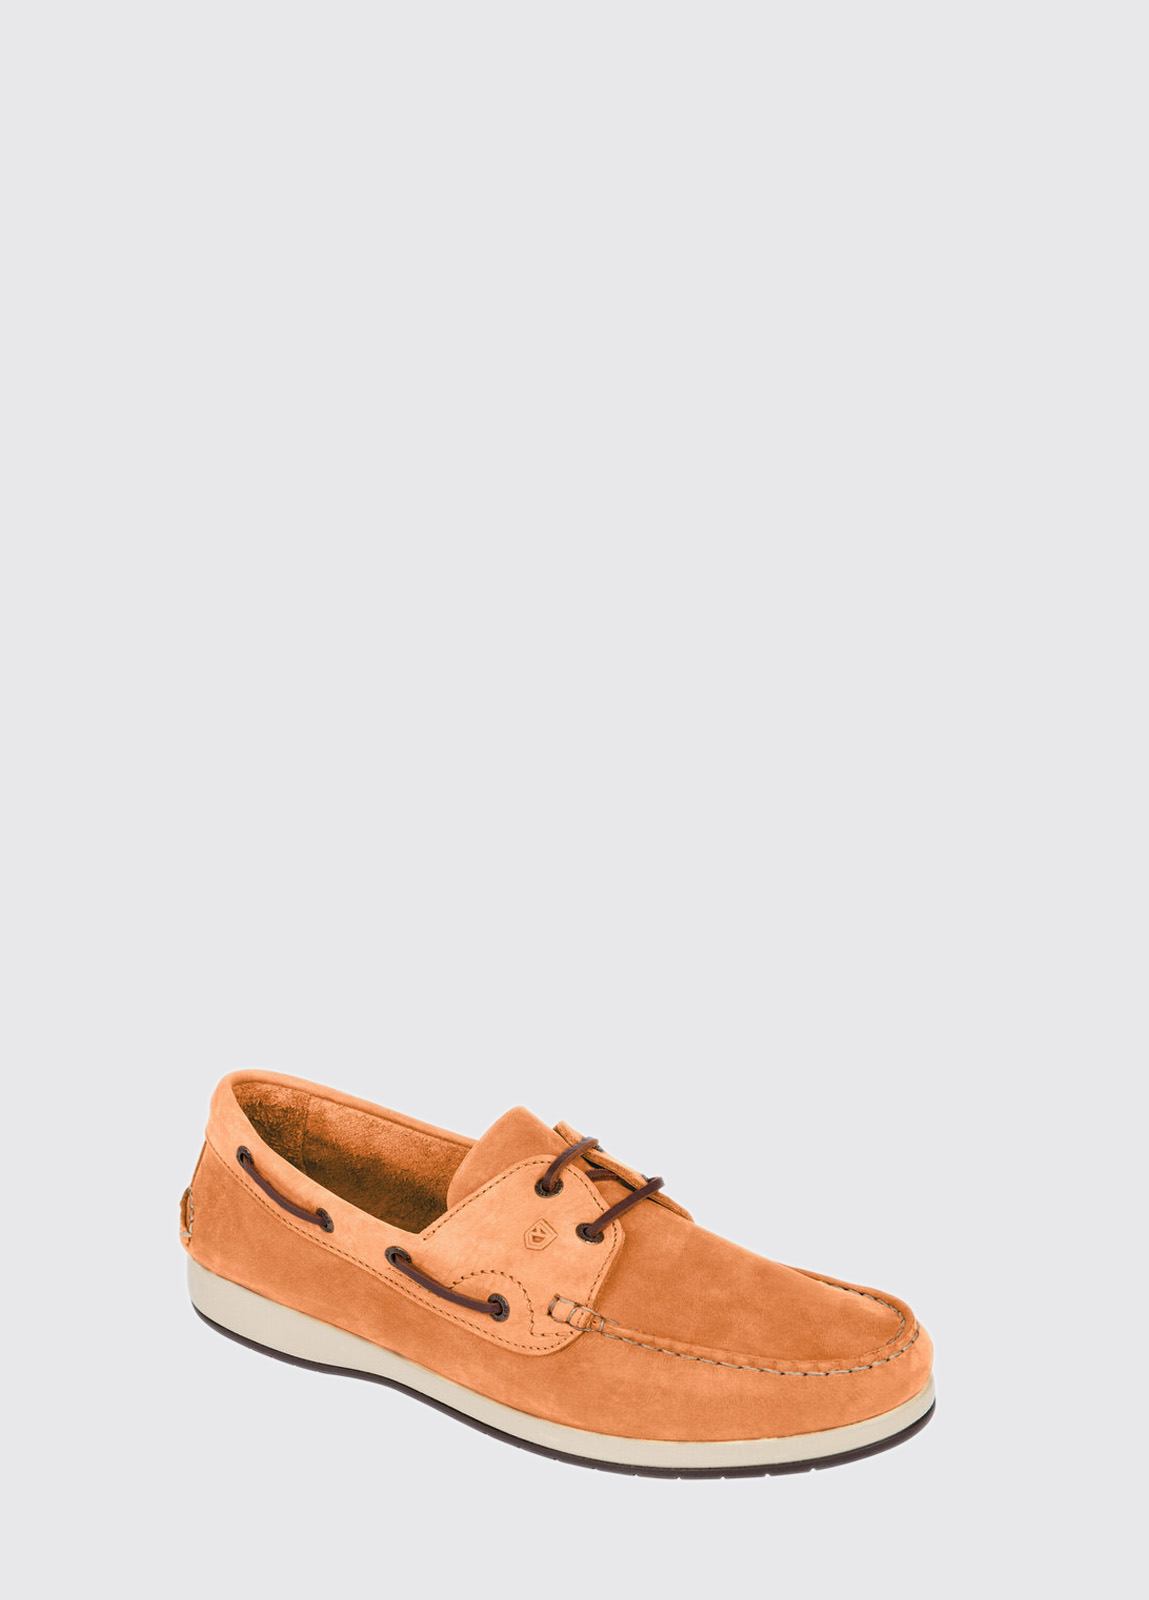 Pacific X LT Deck Shoe - Whiskey